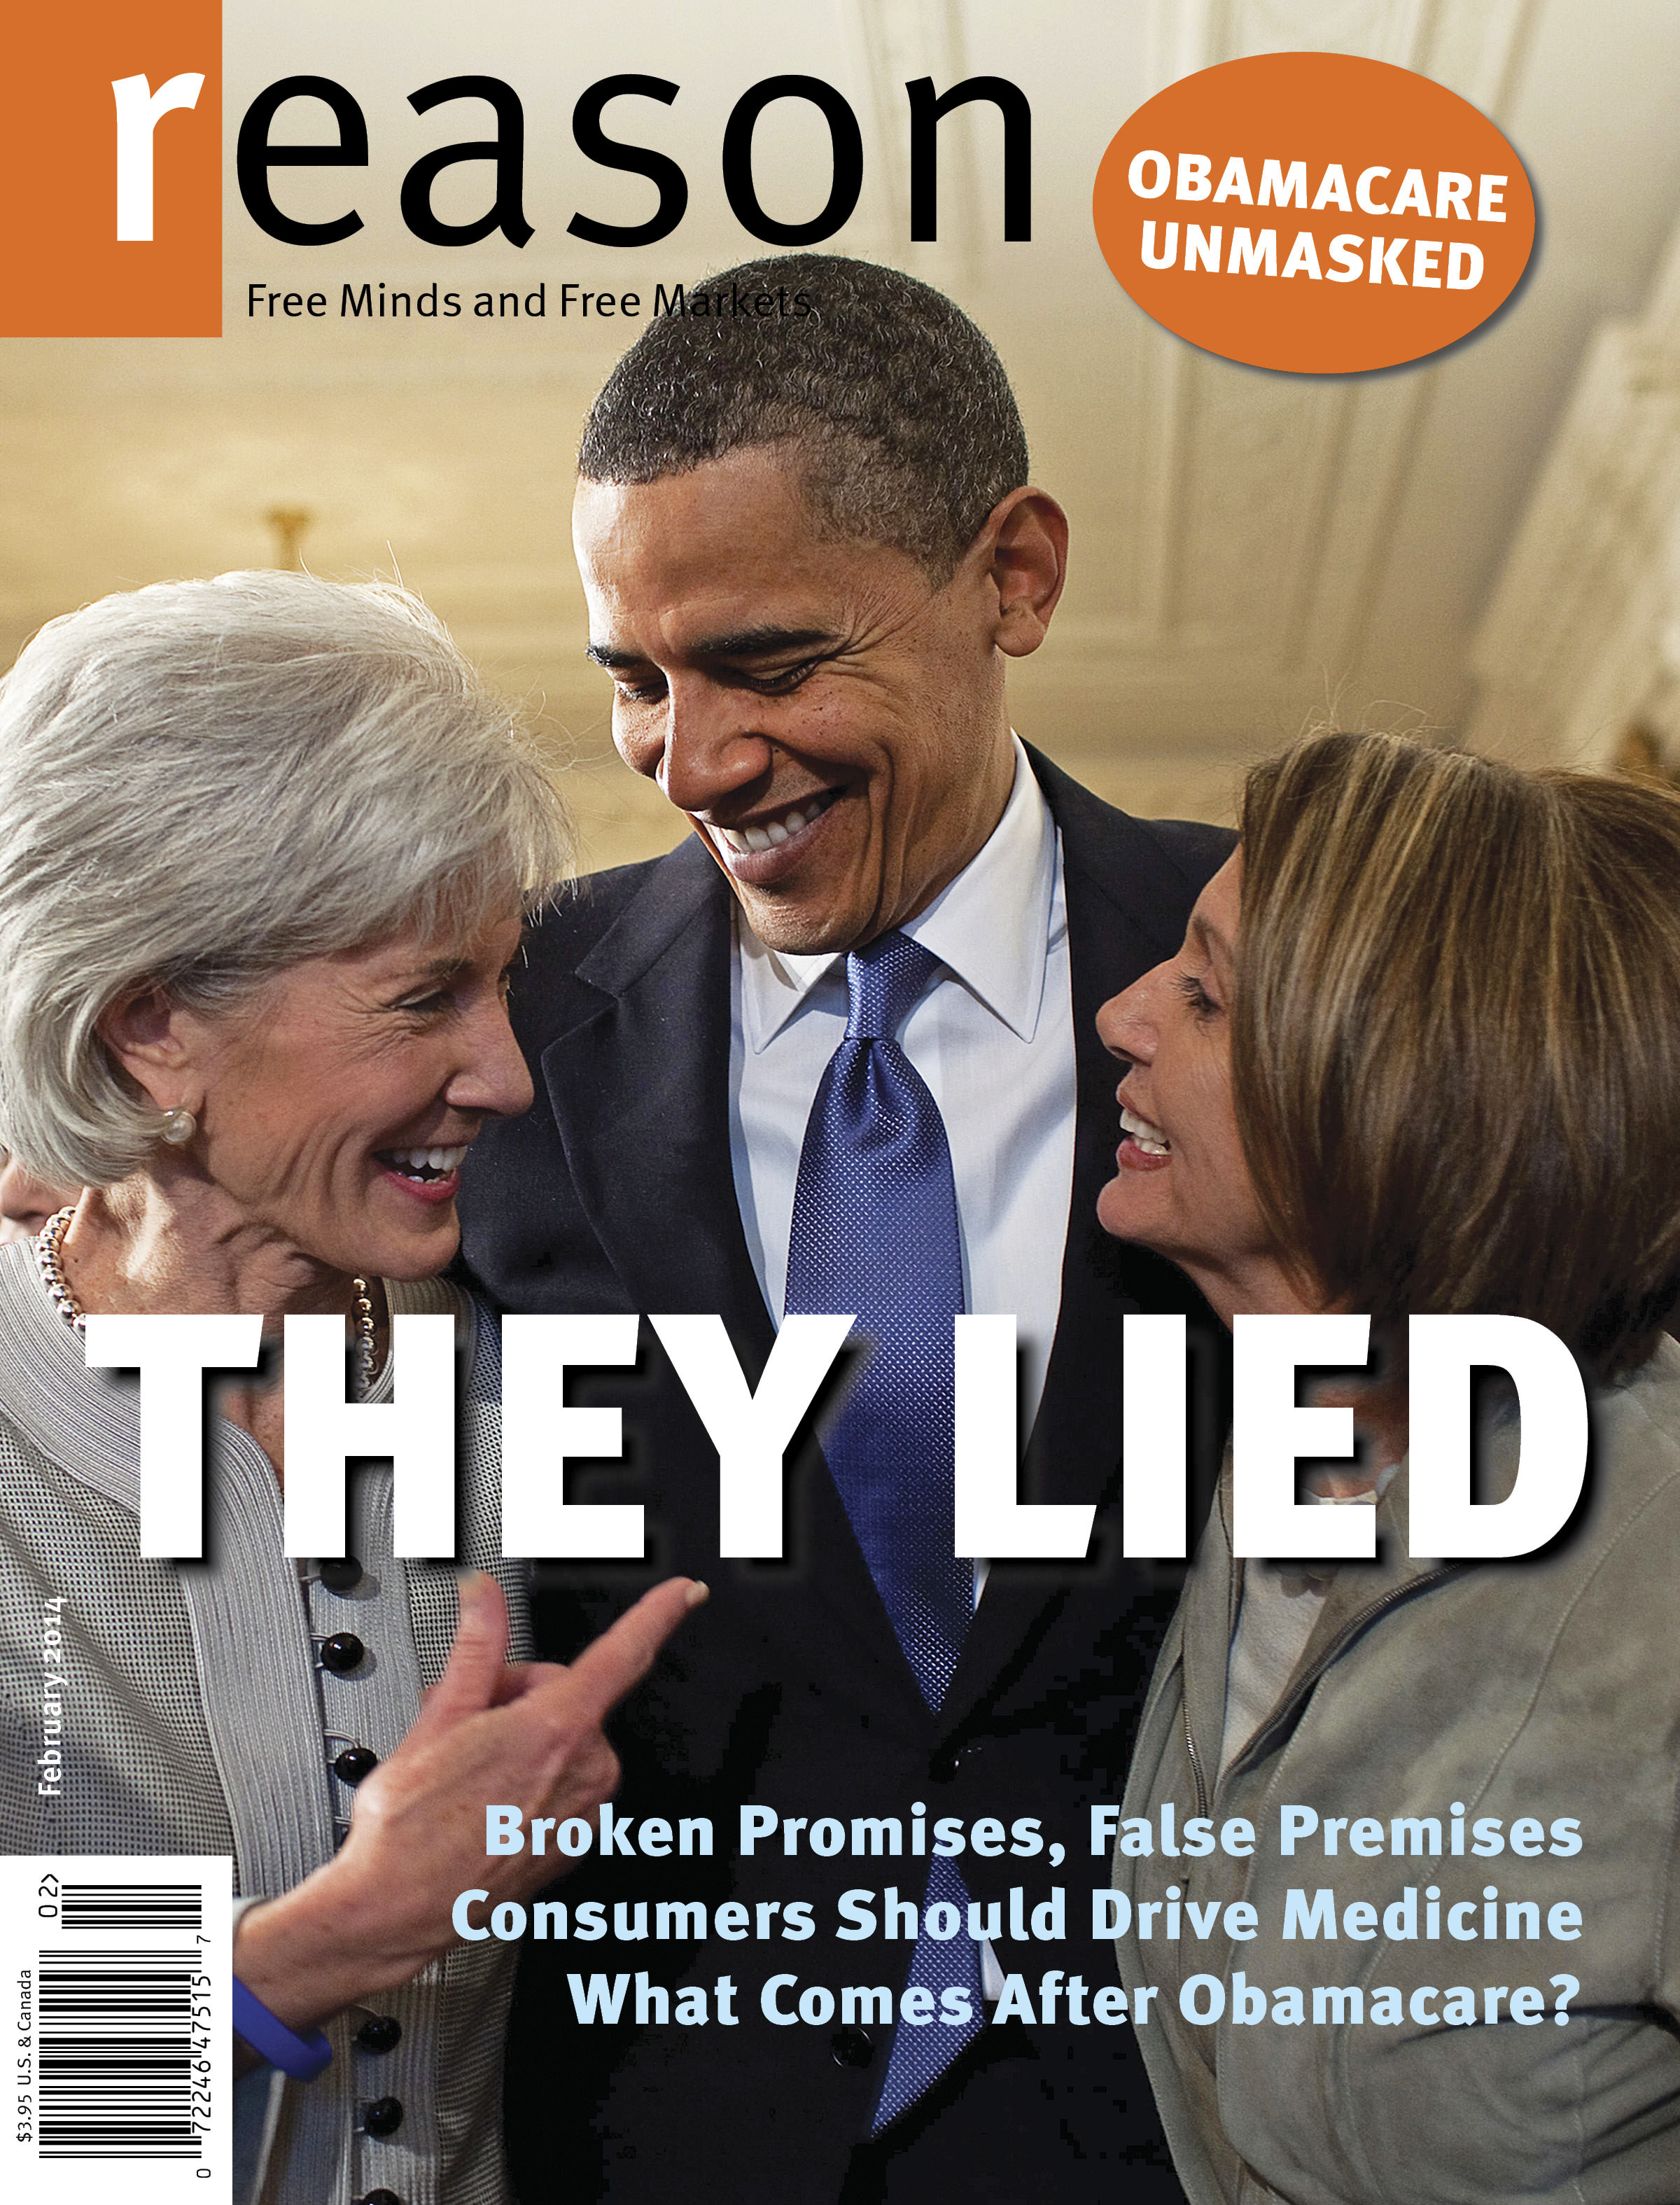 Reason Magazine, February 2014 cover image